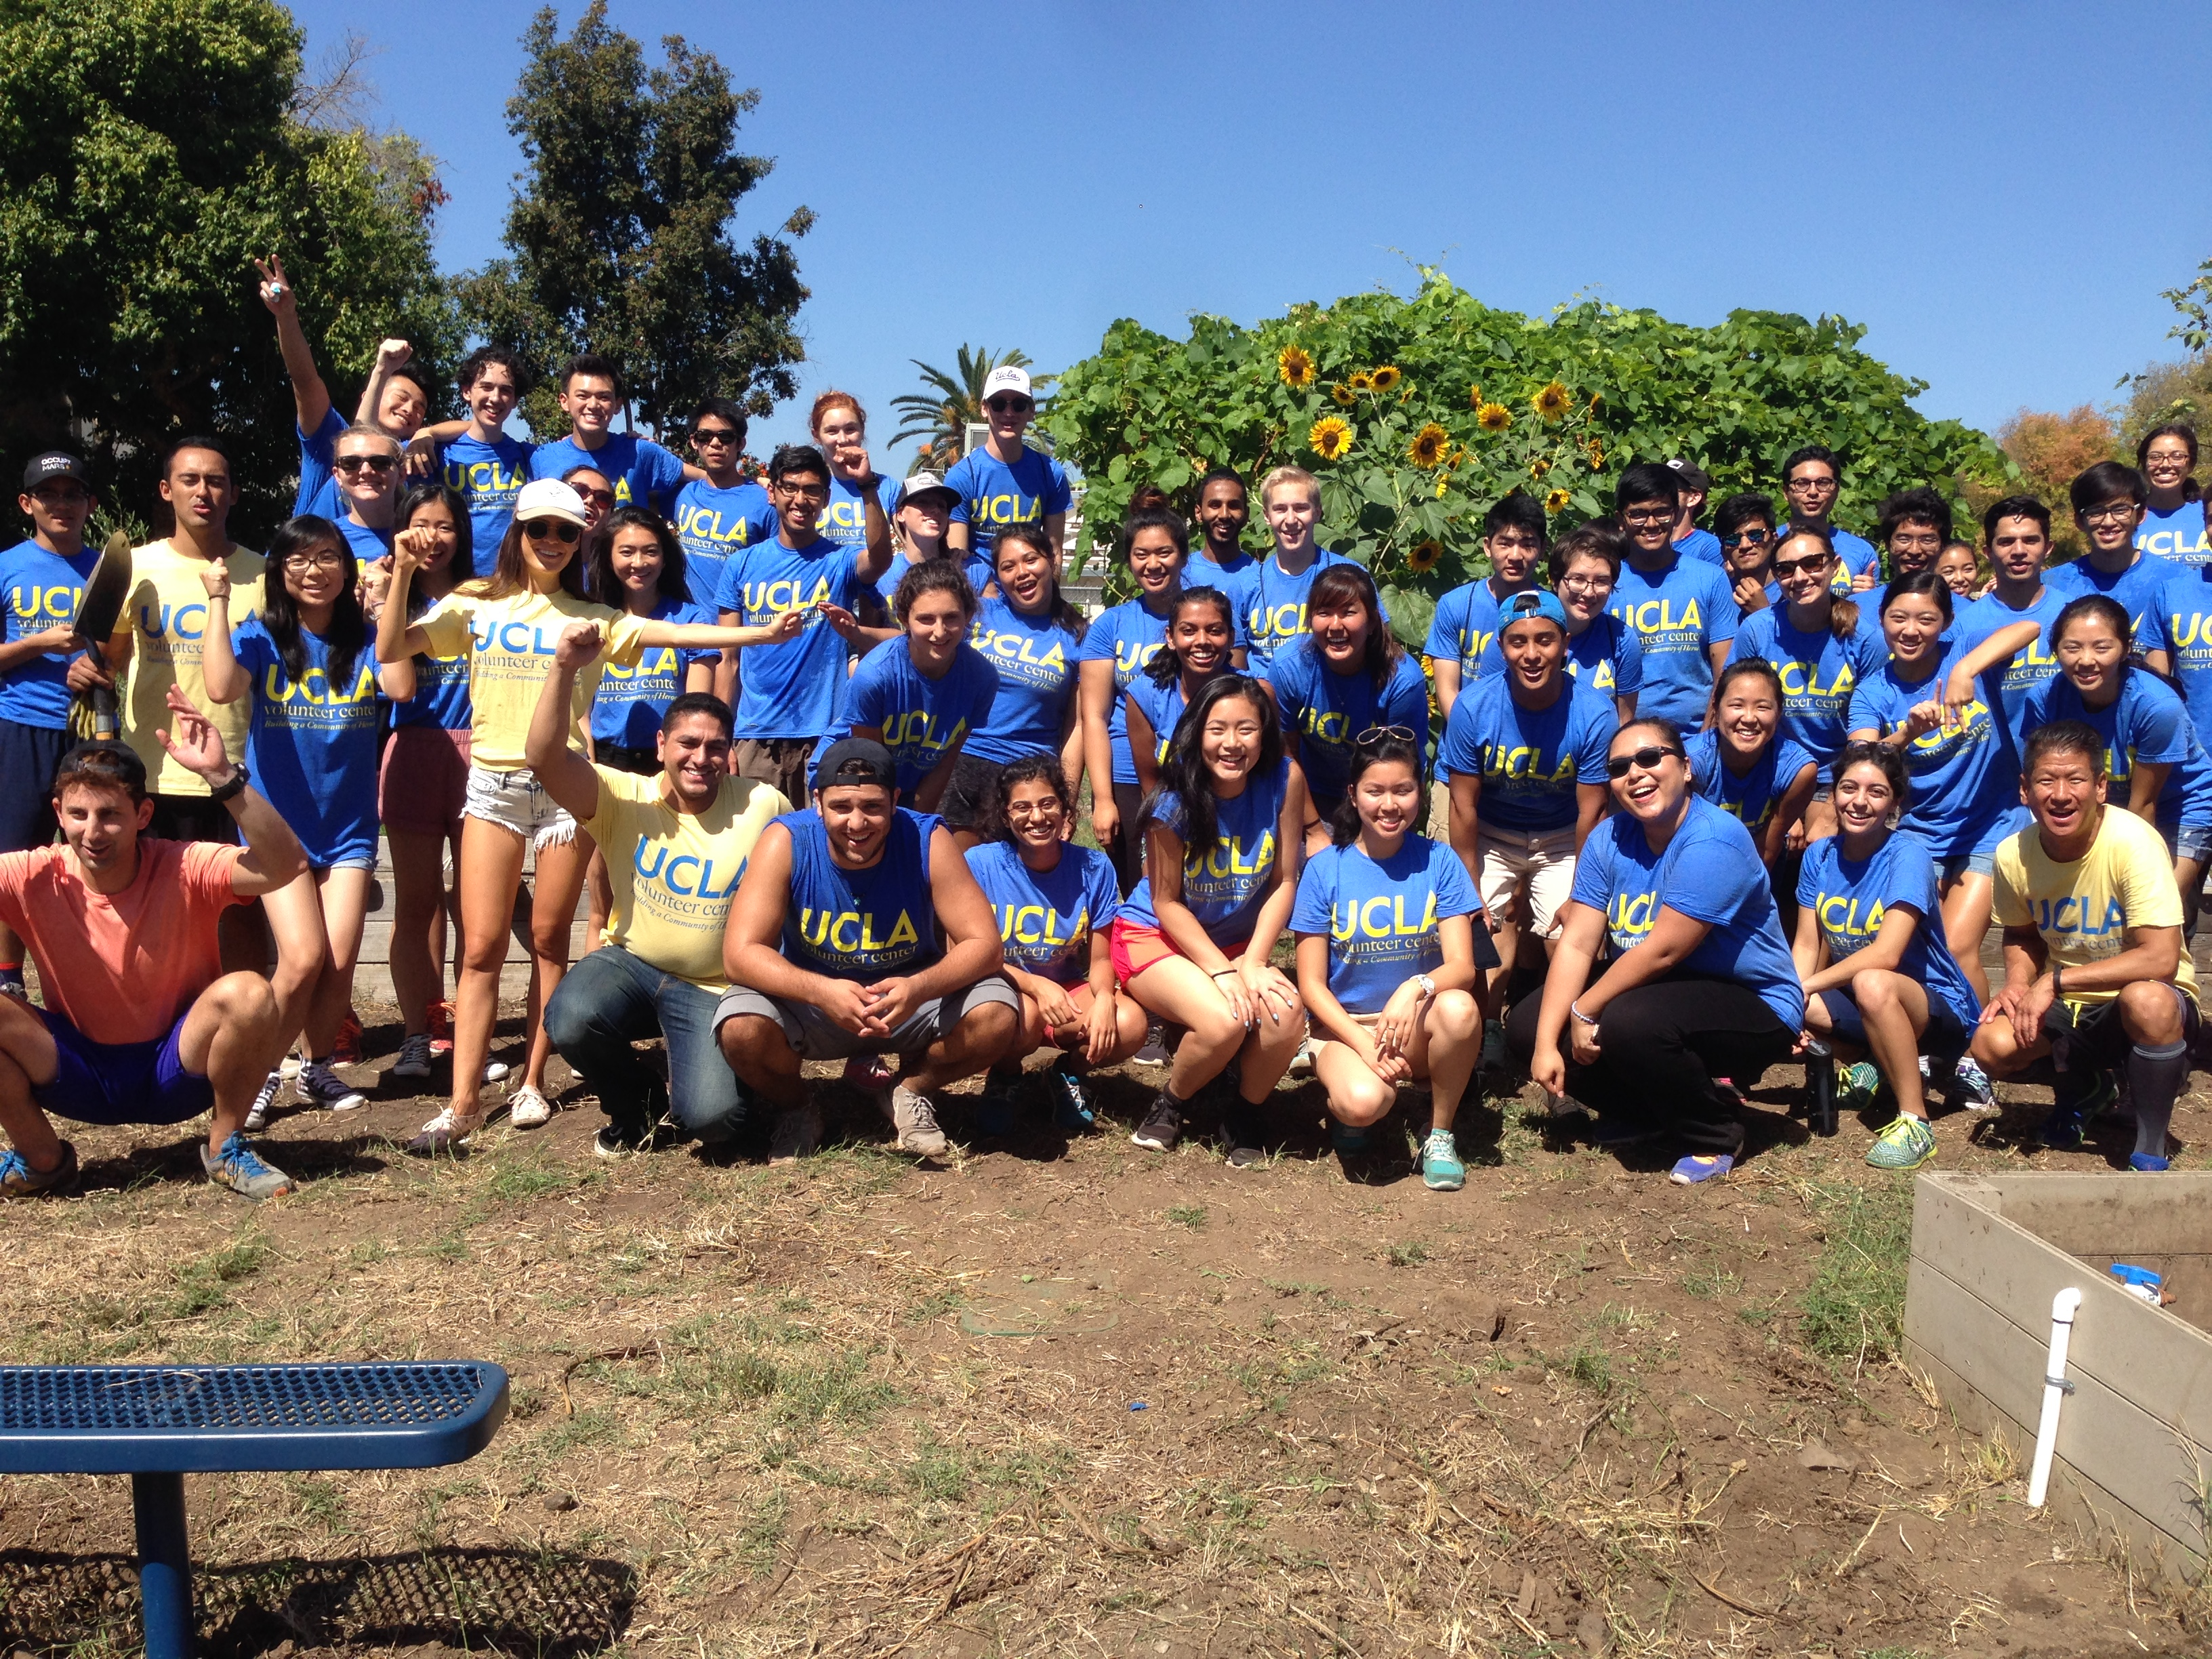 friends of ucla westside alumni scholarships campaign college day at reading to kids community service